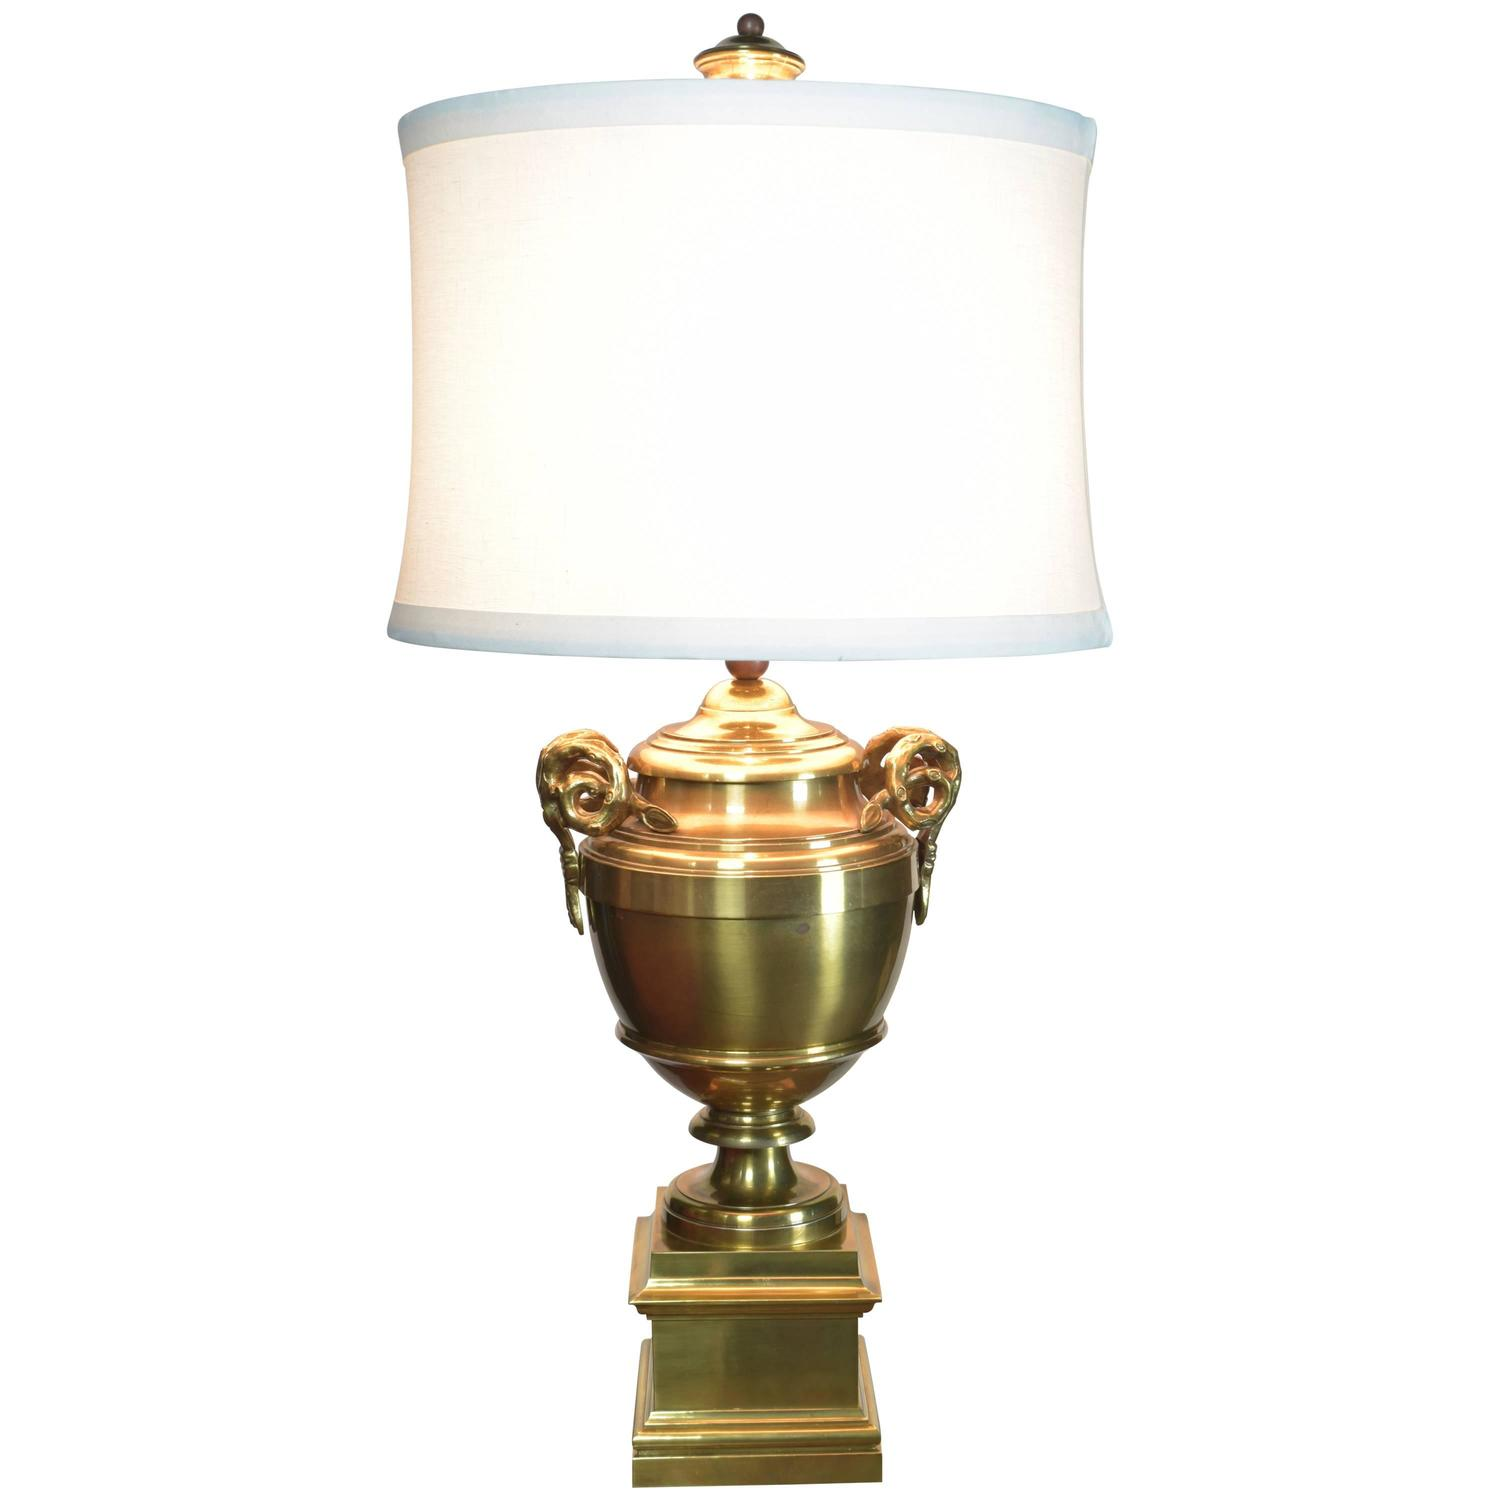 vintage brass chapman lamp for sale at 1stdibs. Black Bedroom Furniture Sets. Home Design Ideas